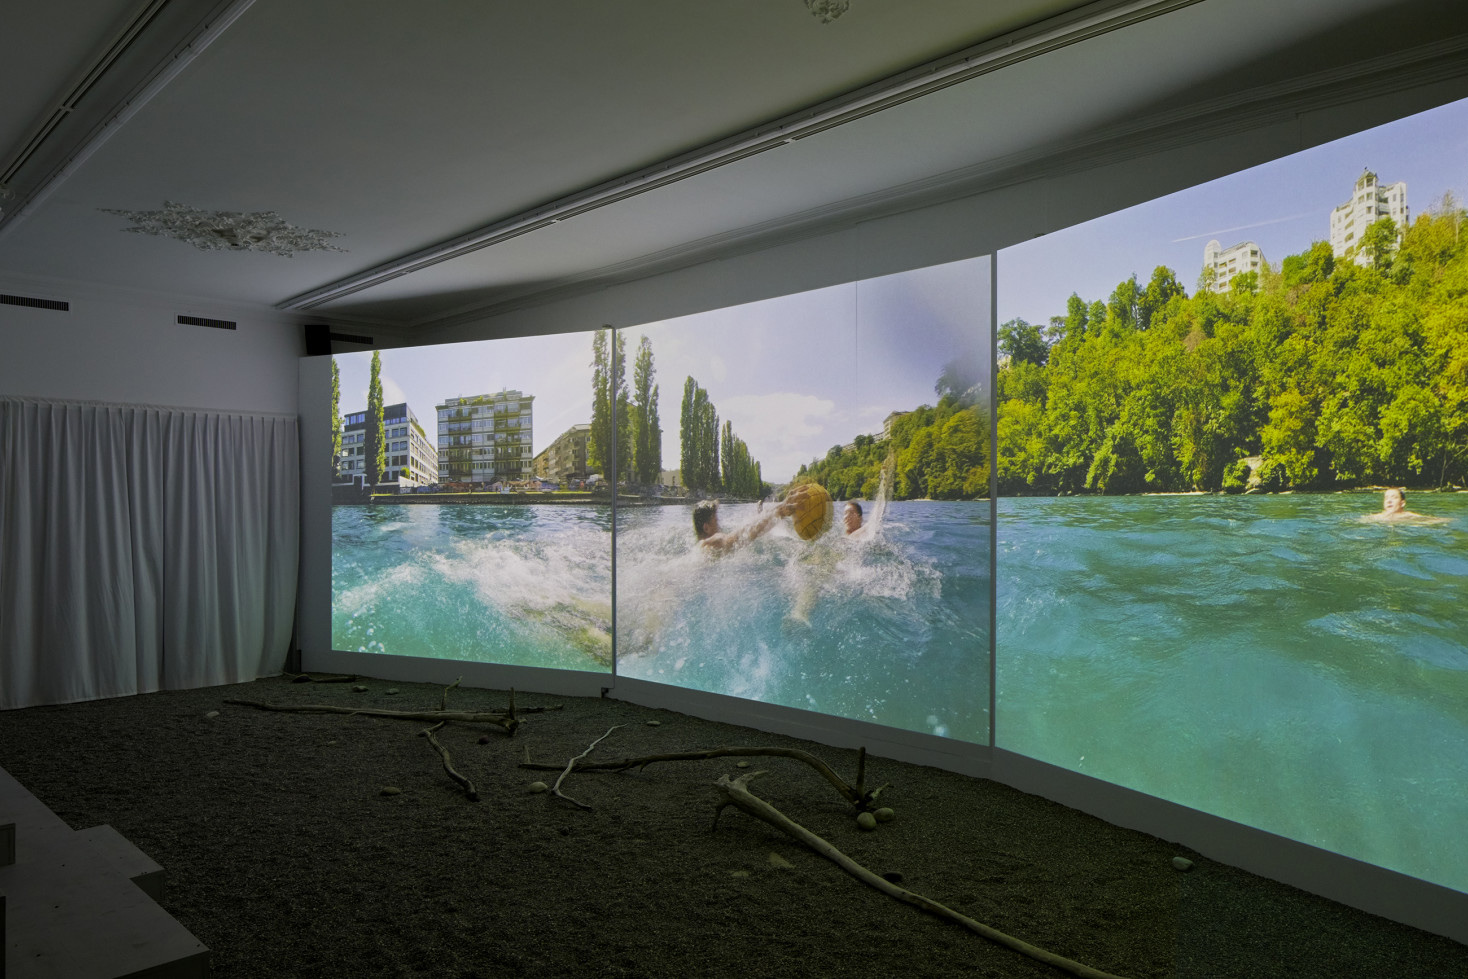 Swim City (2019) – An exhibition curated by Andreas Ruby about river swimming as an urban movement